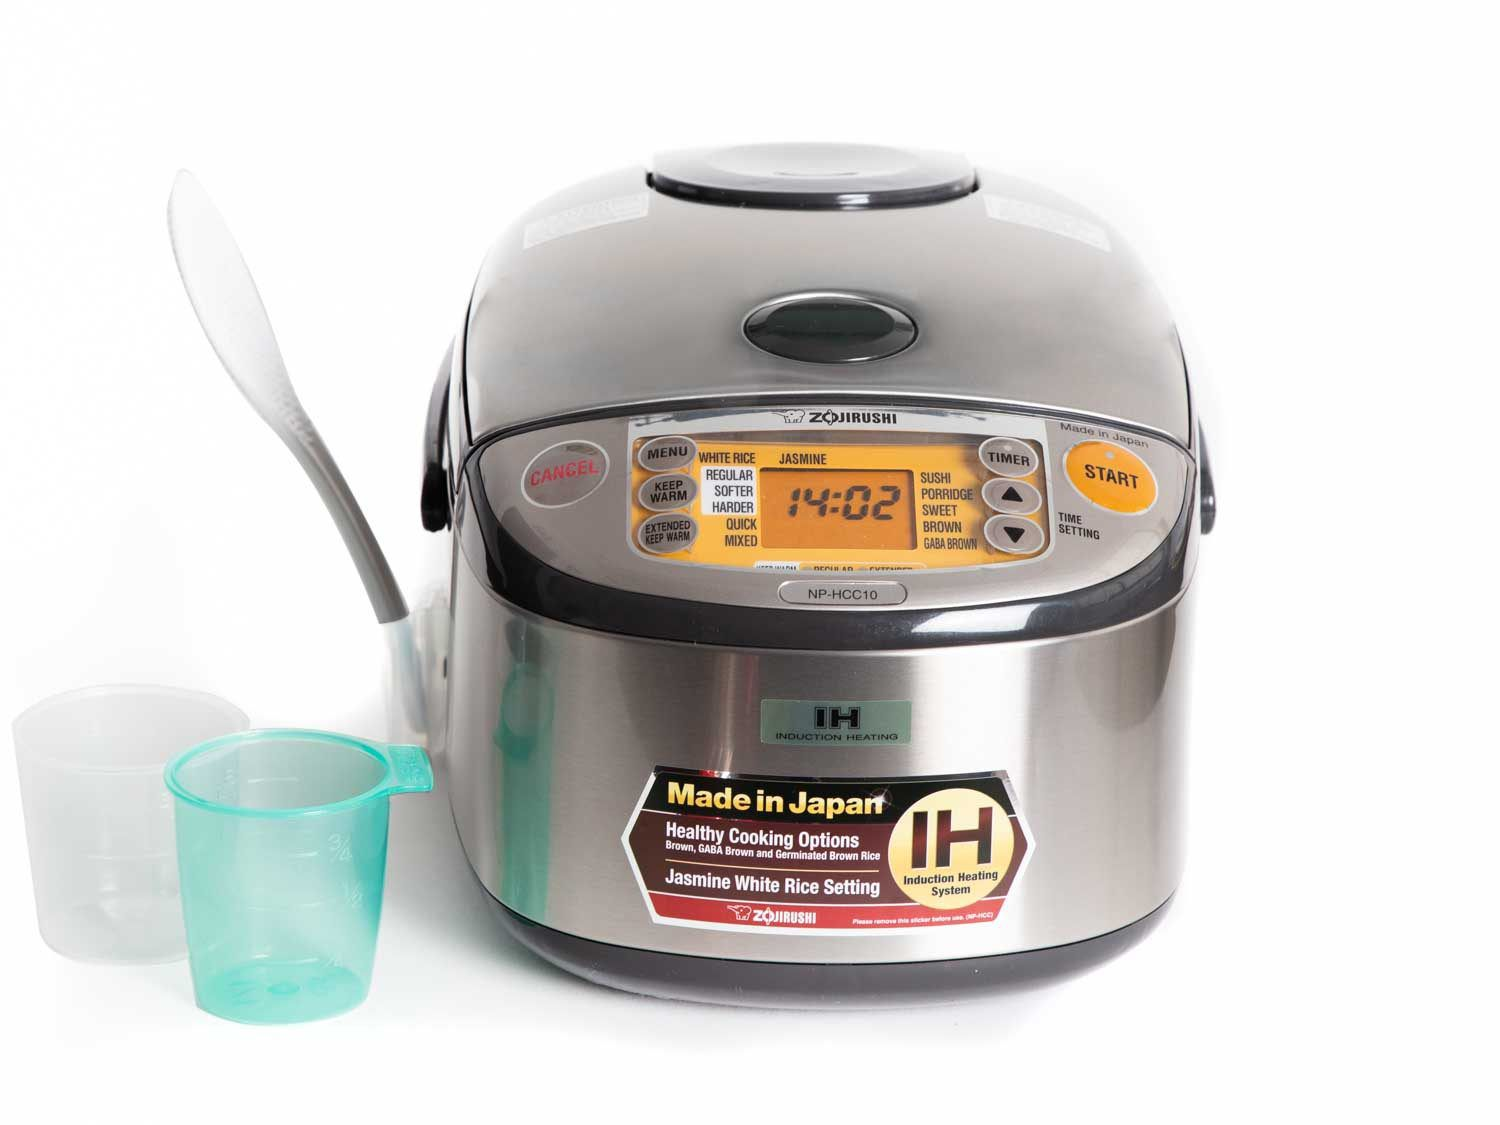 Frontal view of Zojirushi NP HCC10 rice cooker